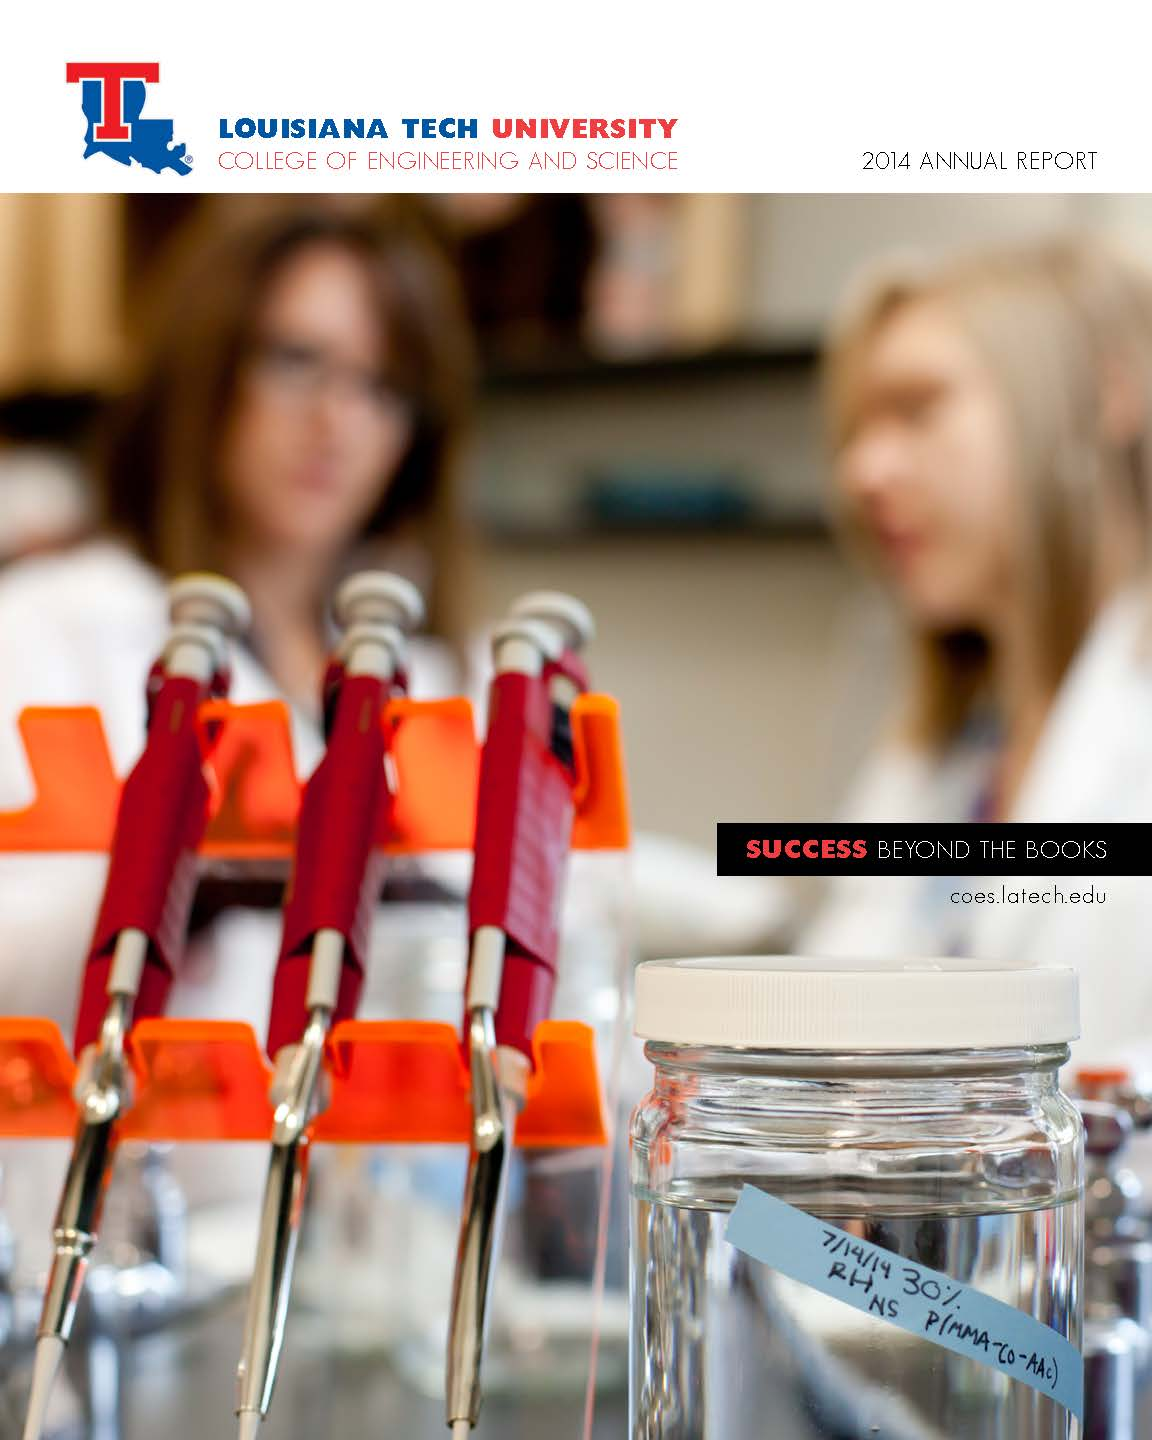 Louisiana Tech University College of Engineering and Science Annual Report 2014